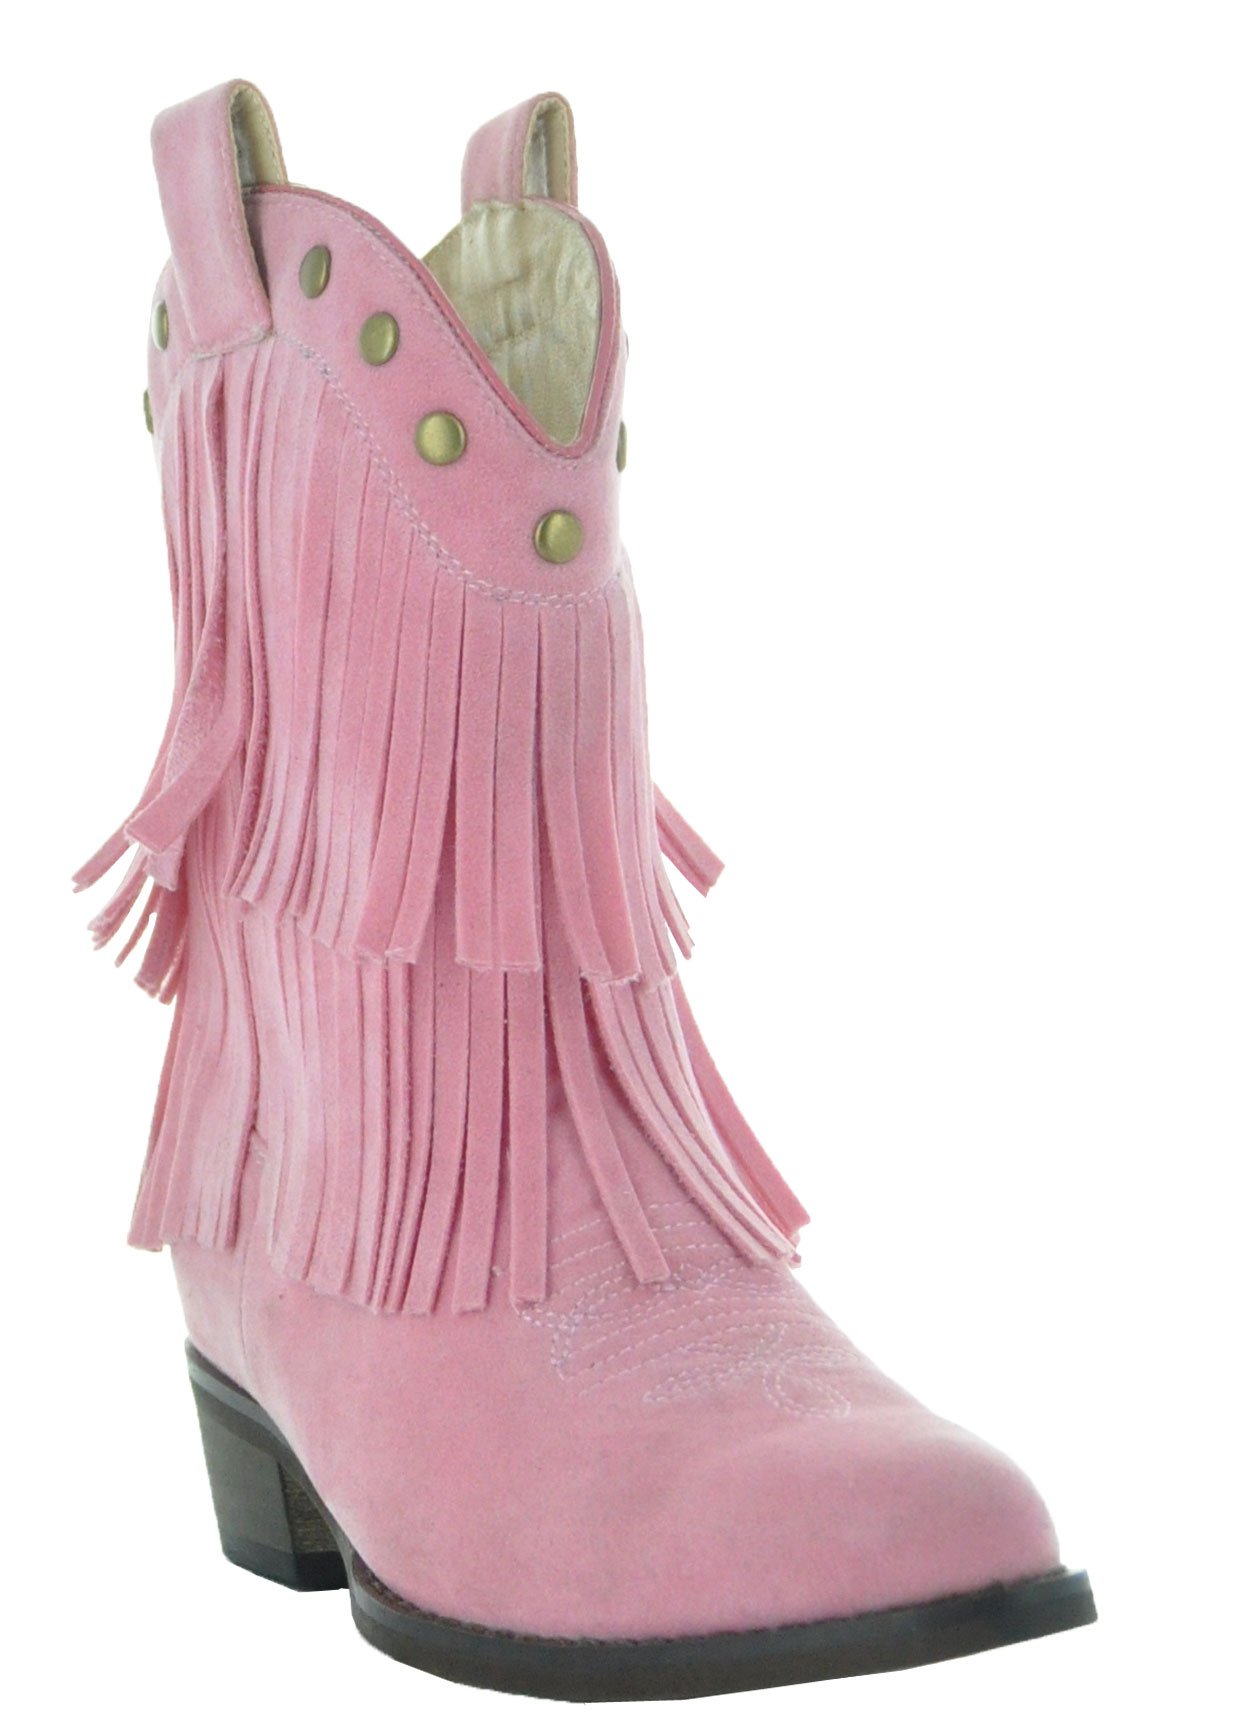 Little Kids Fun Fringe Brown Cowgirl Boots by Country Love Boots (12 Little Kid, Pink)